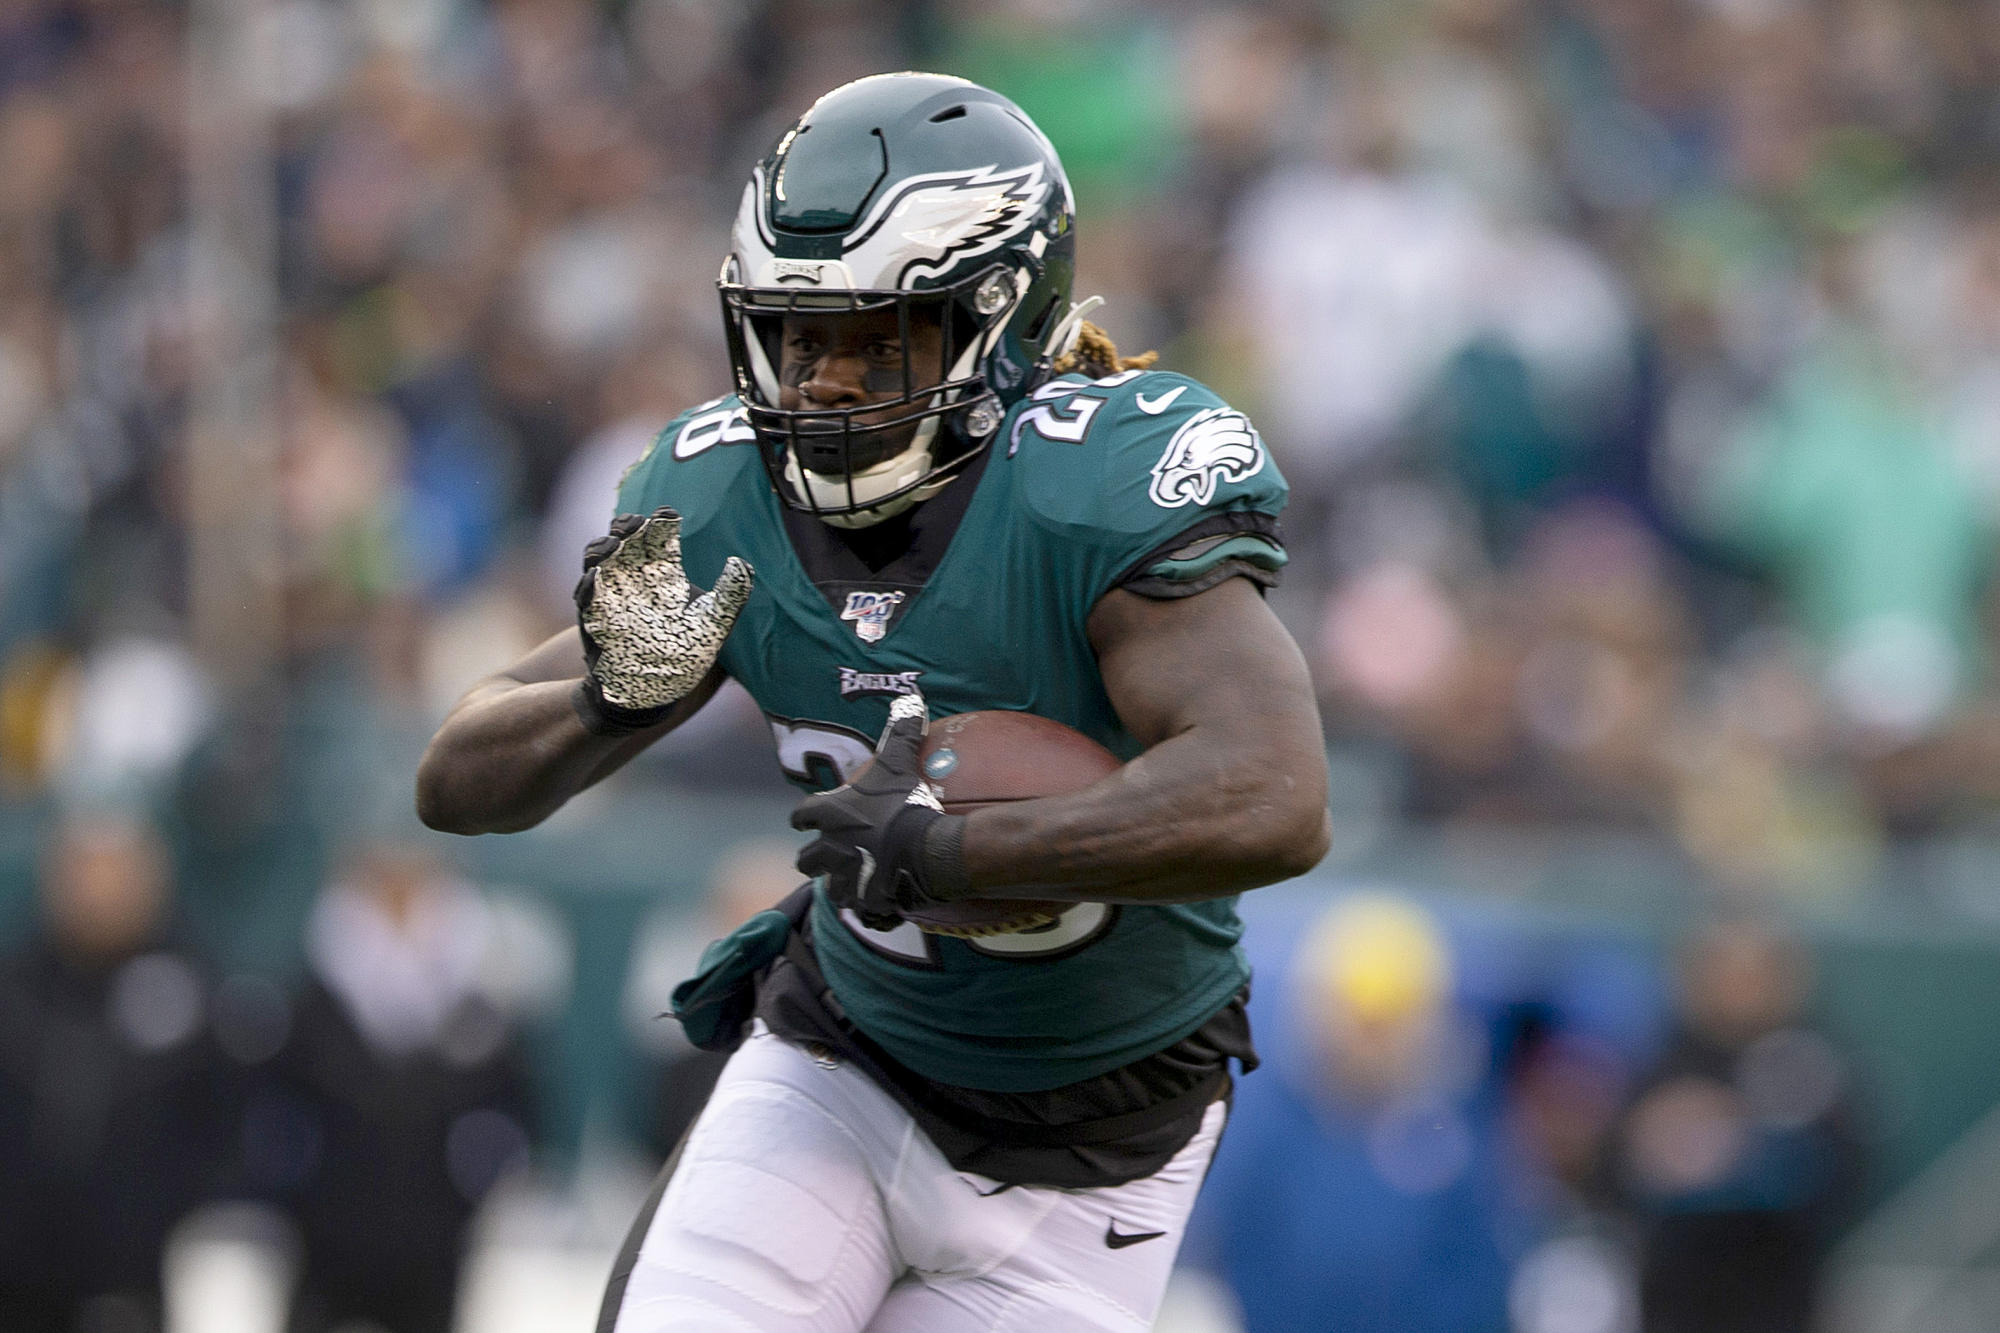 Eagles release Jay Ajayi after briefly re-signing: report